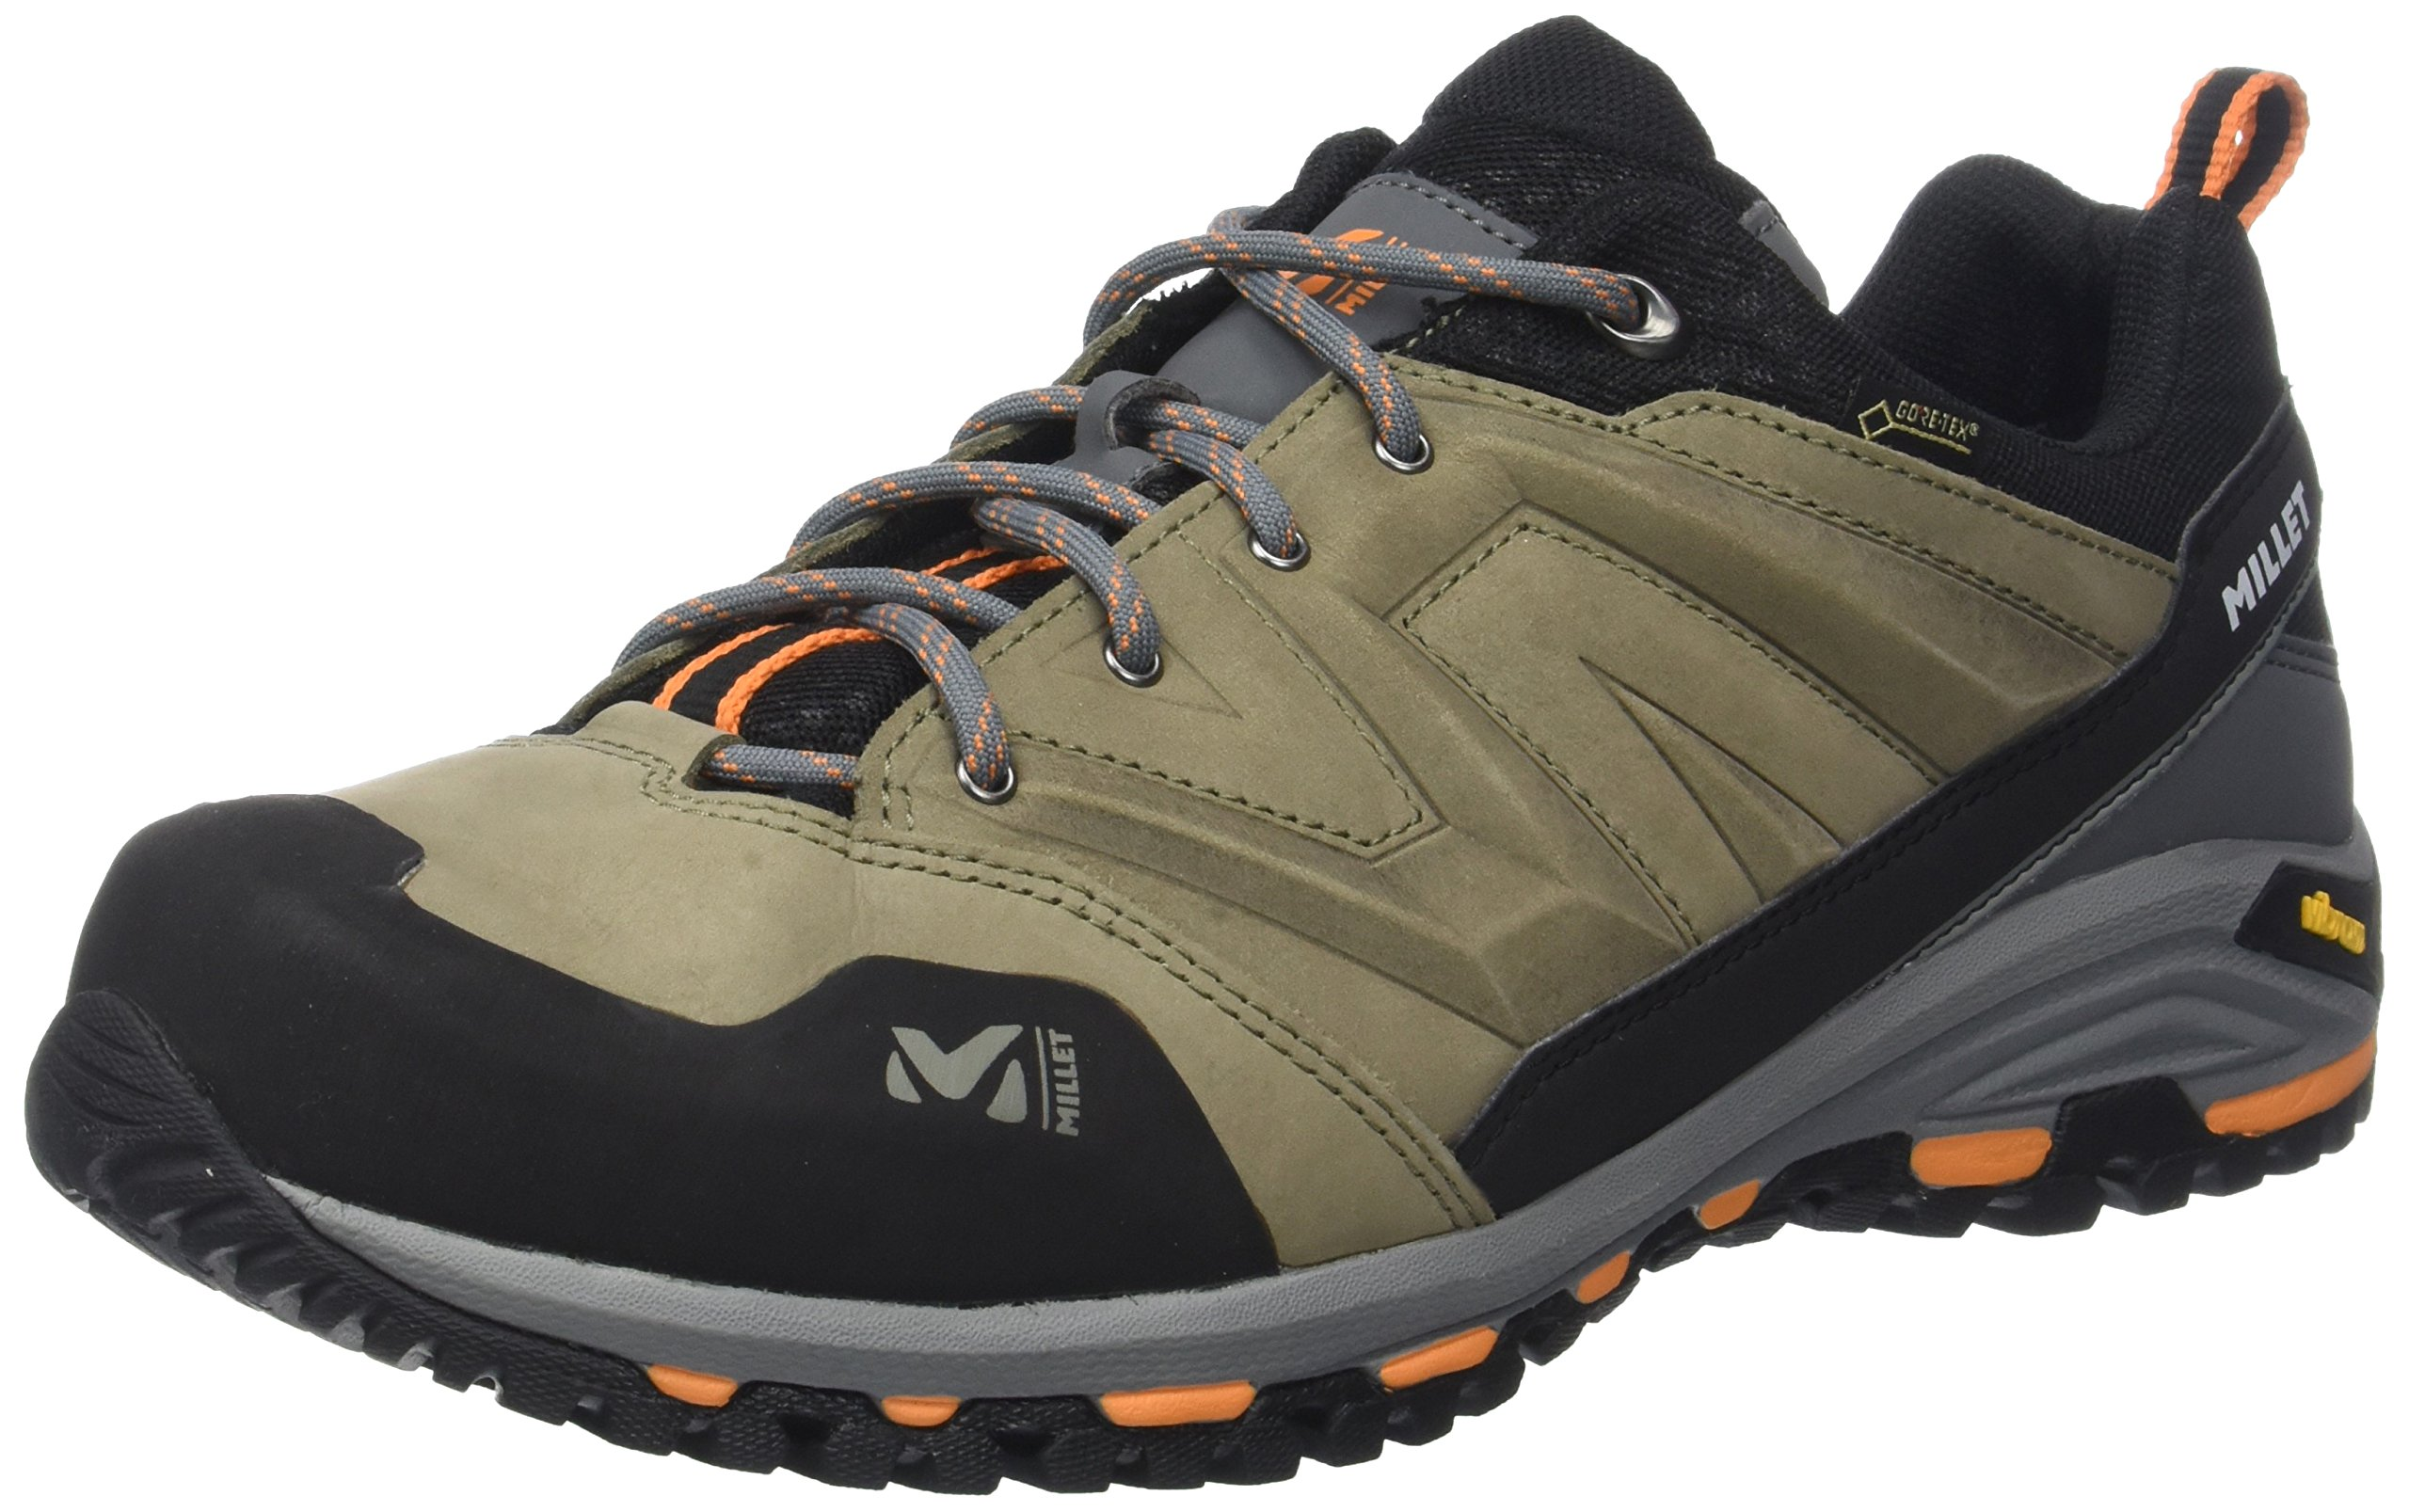 Hike Randonnée Basses AdulteMulticolorebeige Millet GtxChaussures 00046 Up Mixte black Eu De lTF1cJK3